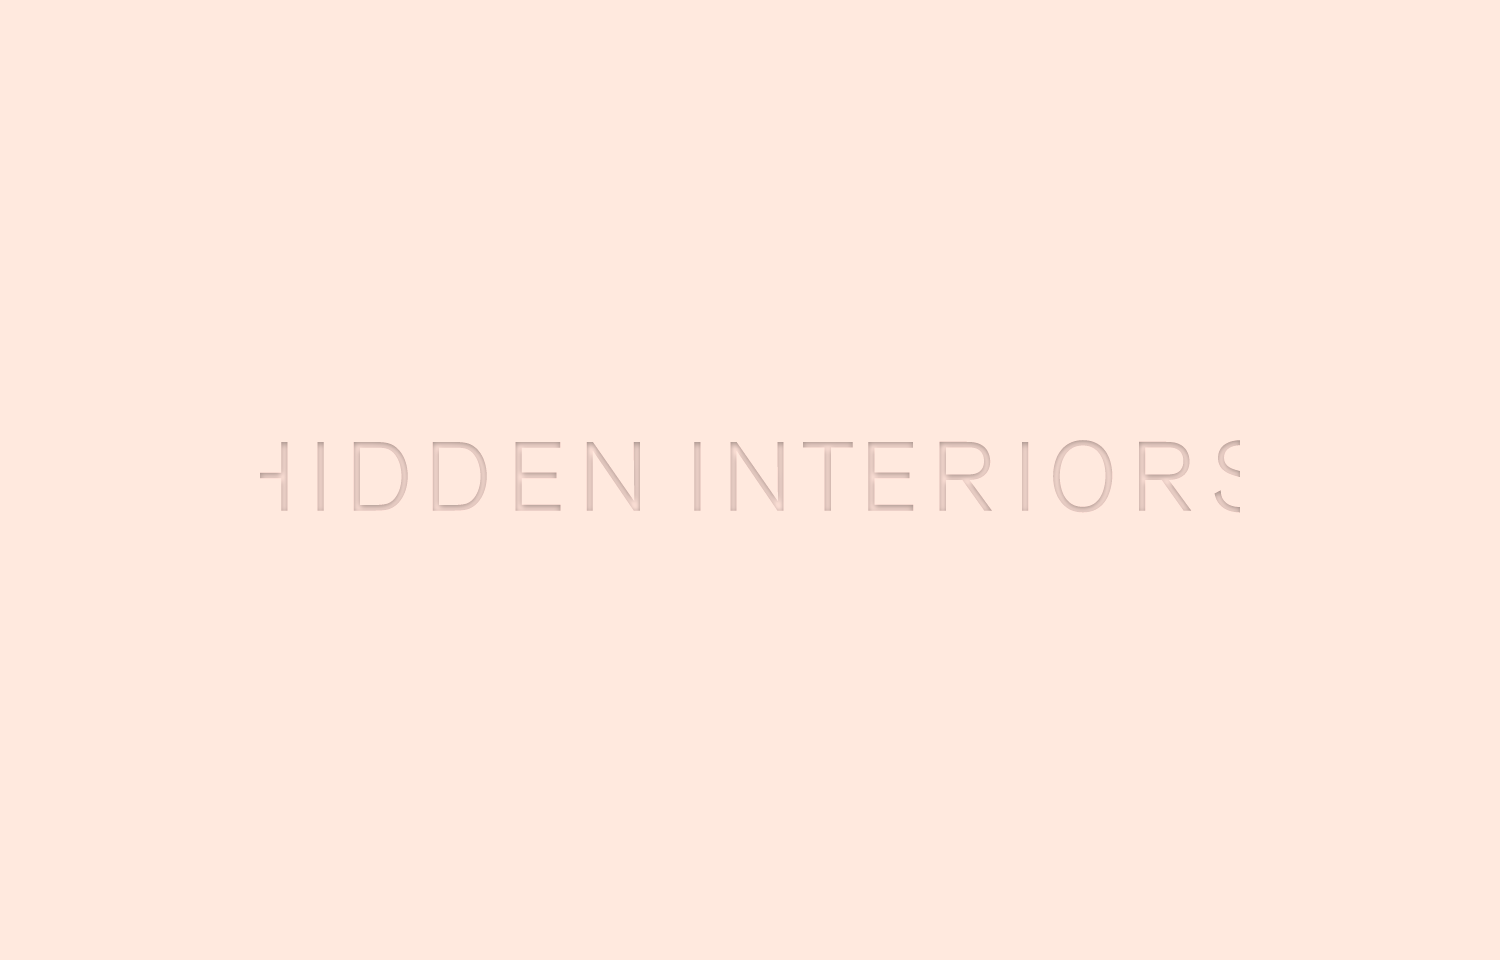 Hidden Interiors logo design, pink on pink.